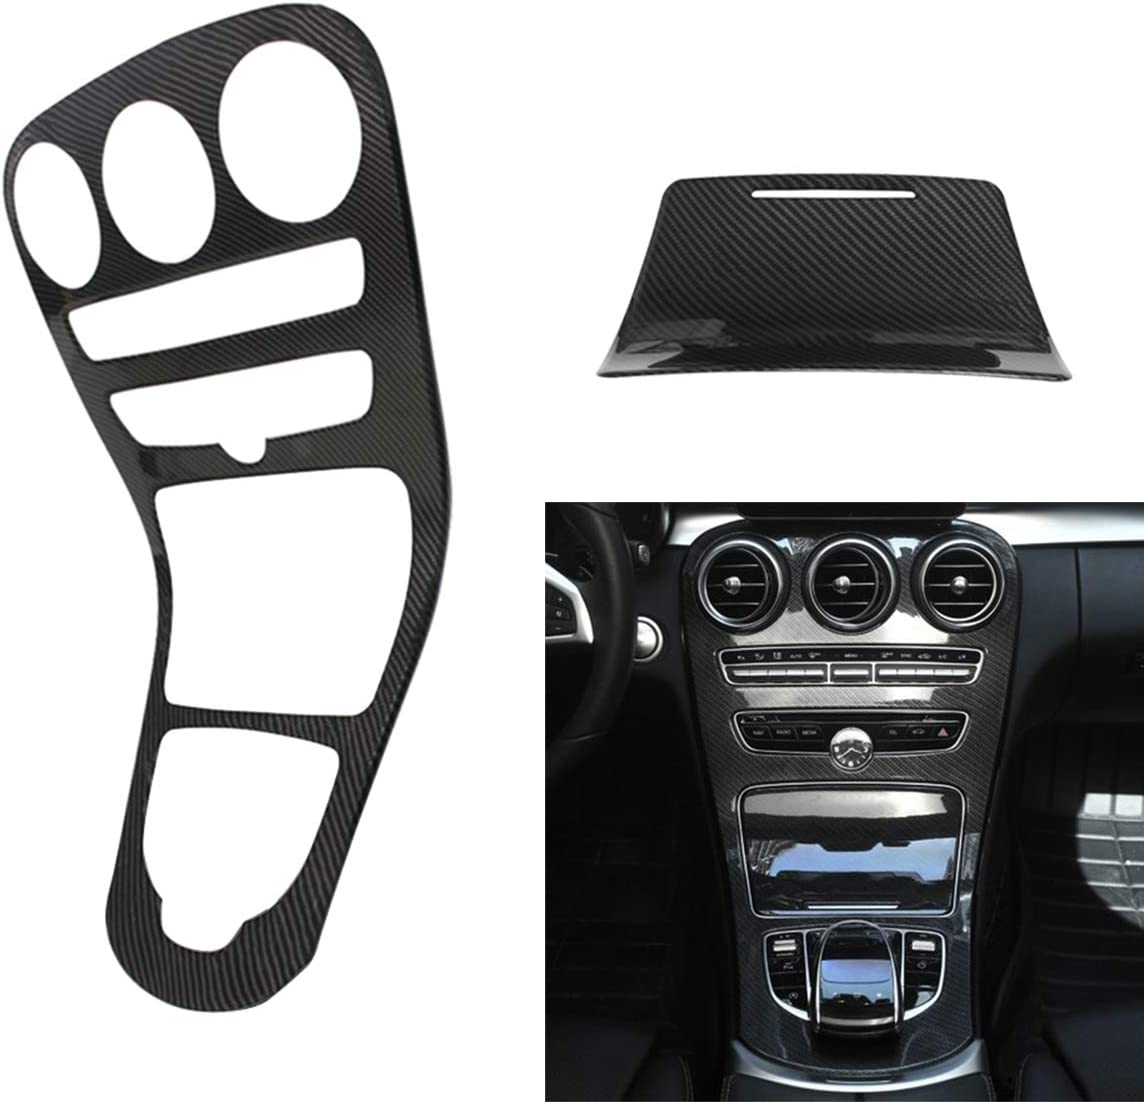 NewYall Carbon Fiber Center Console Frame Cover Omaha Price reduction Mall Panel Gear Shift